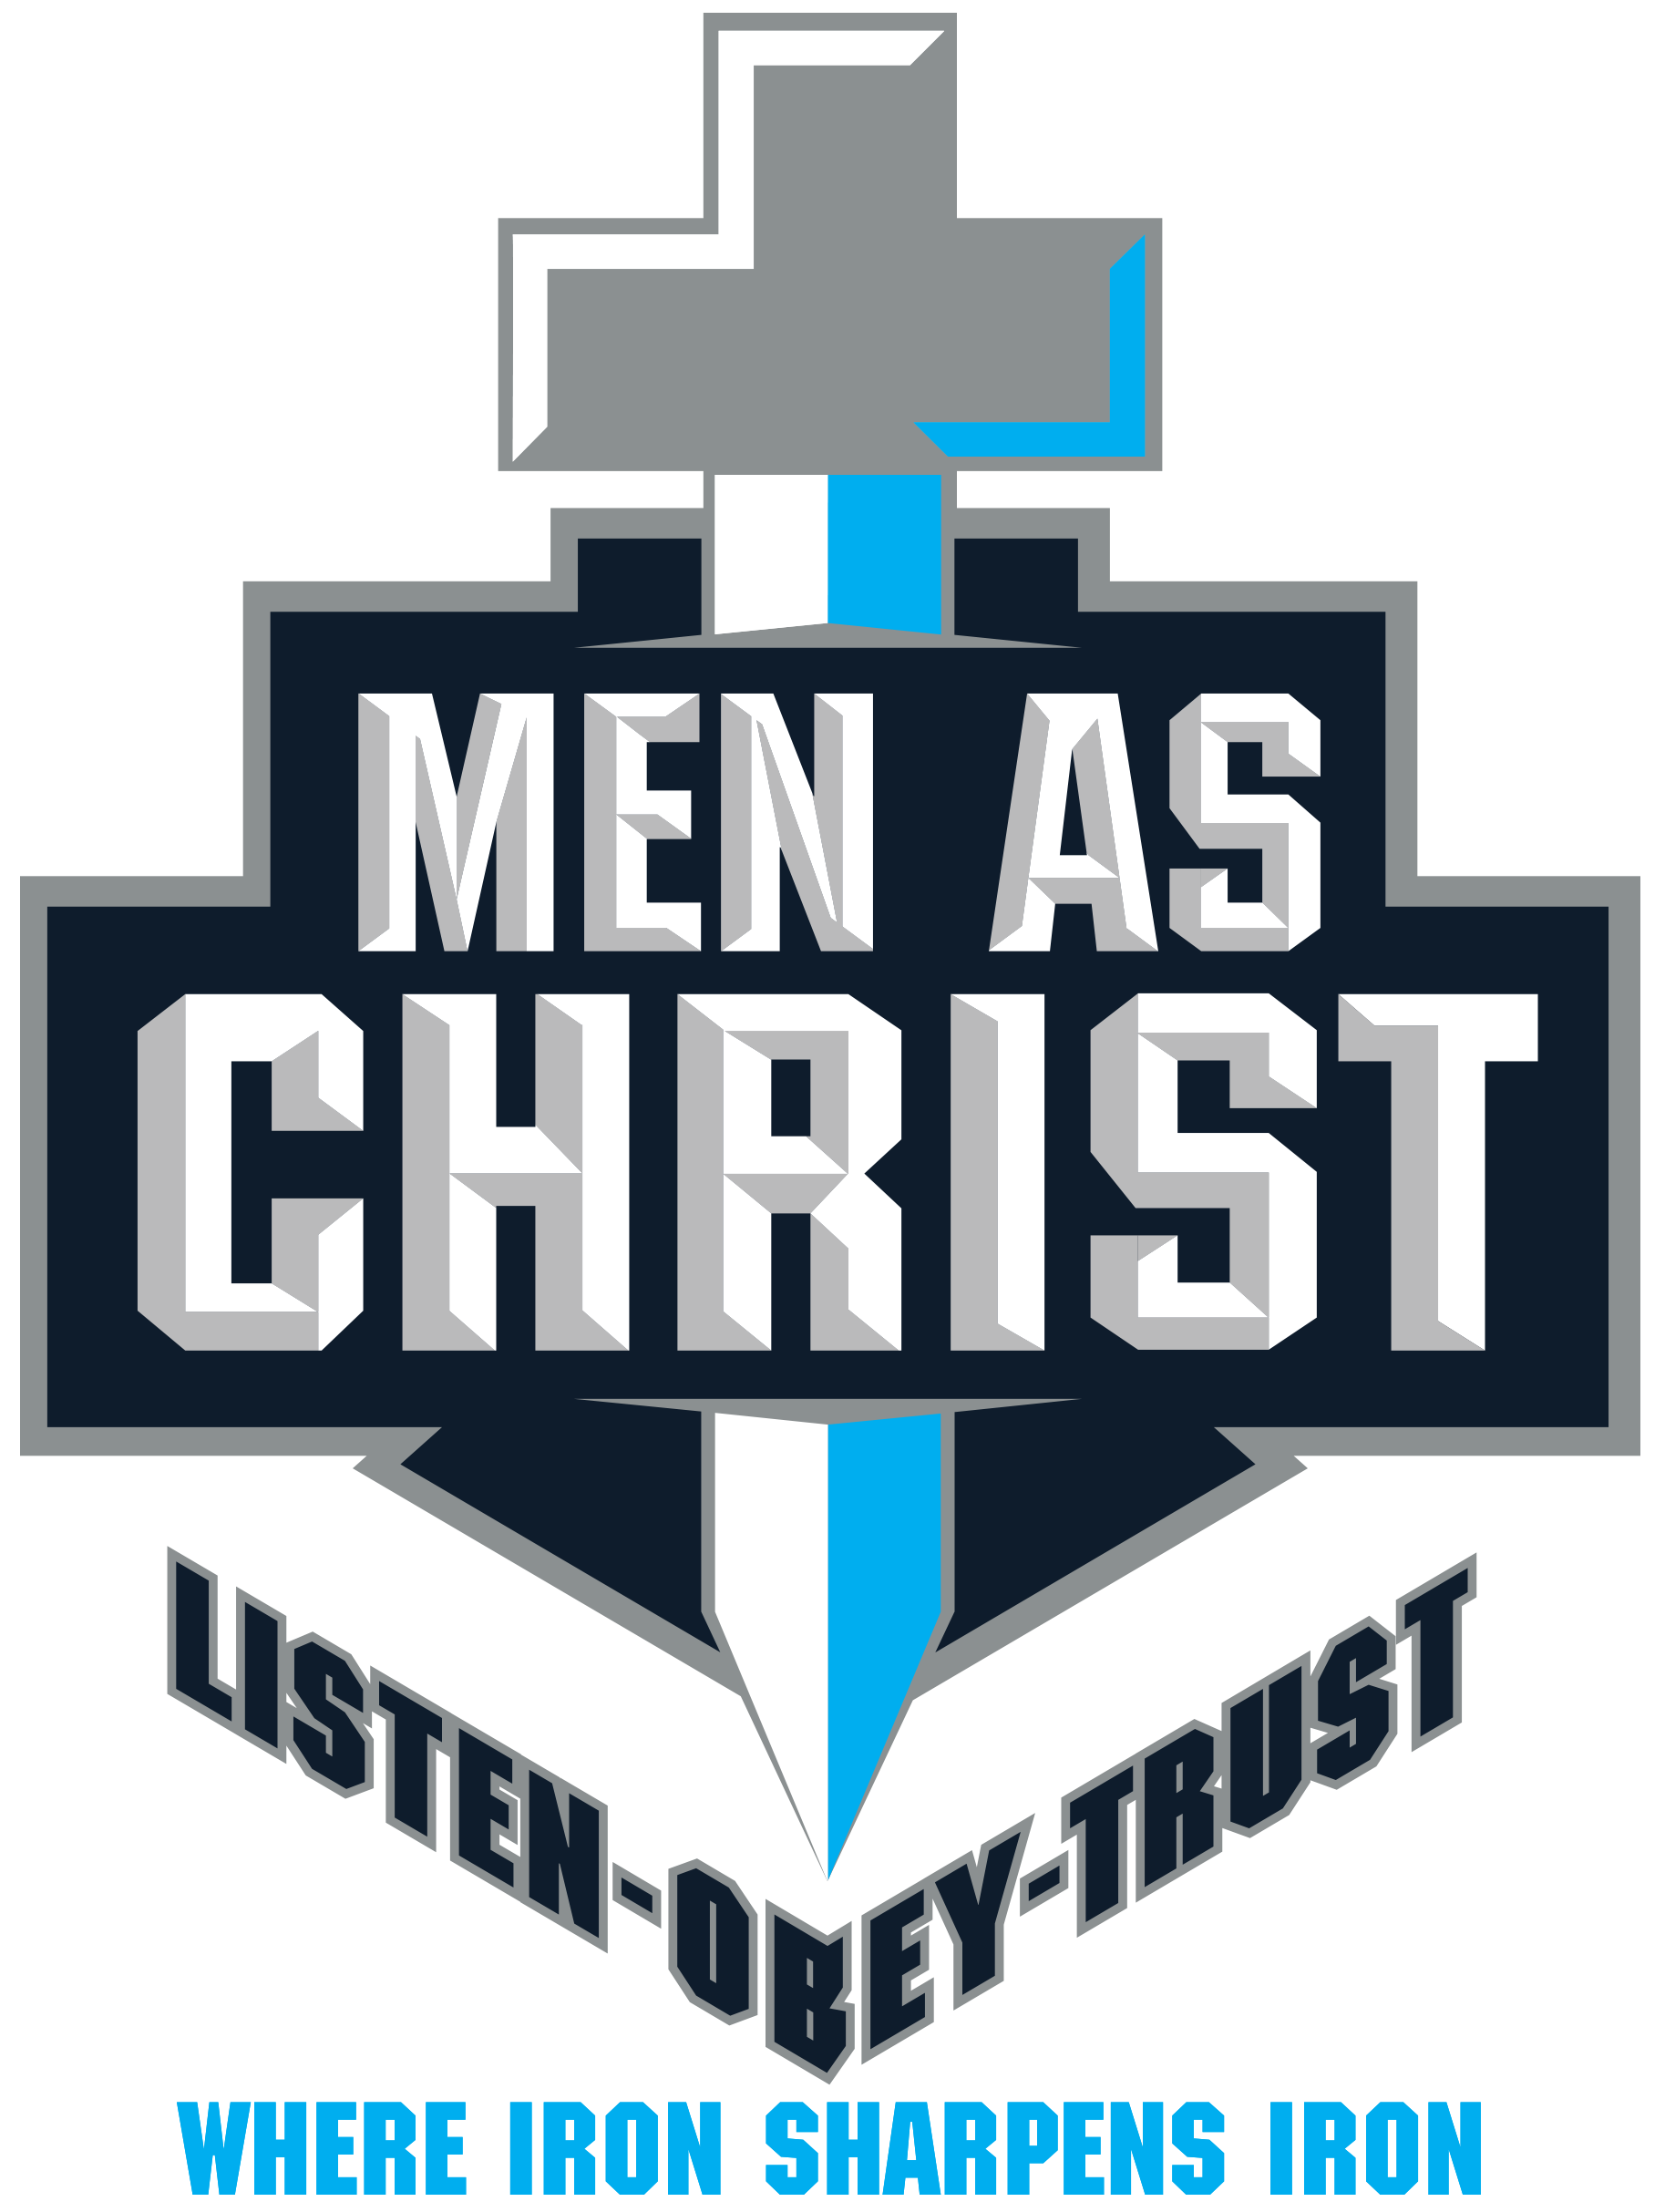 Men As Christ